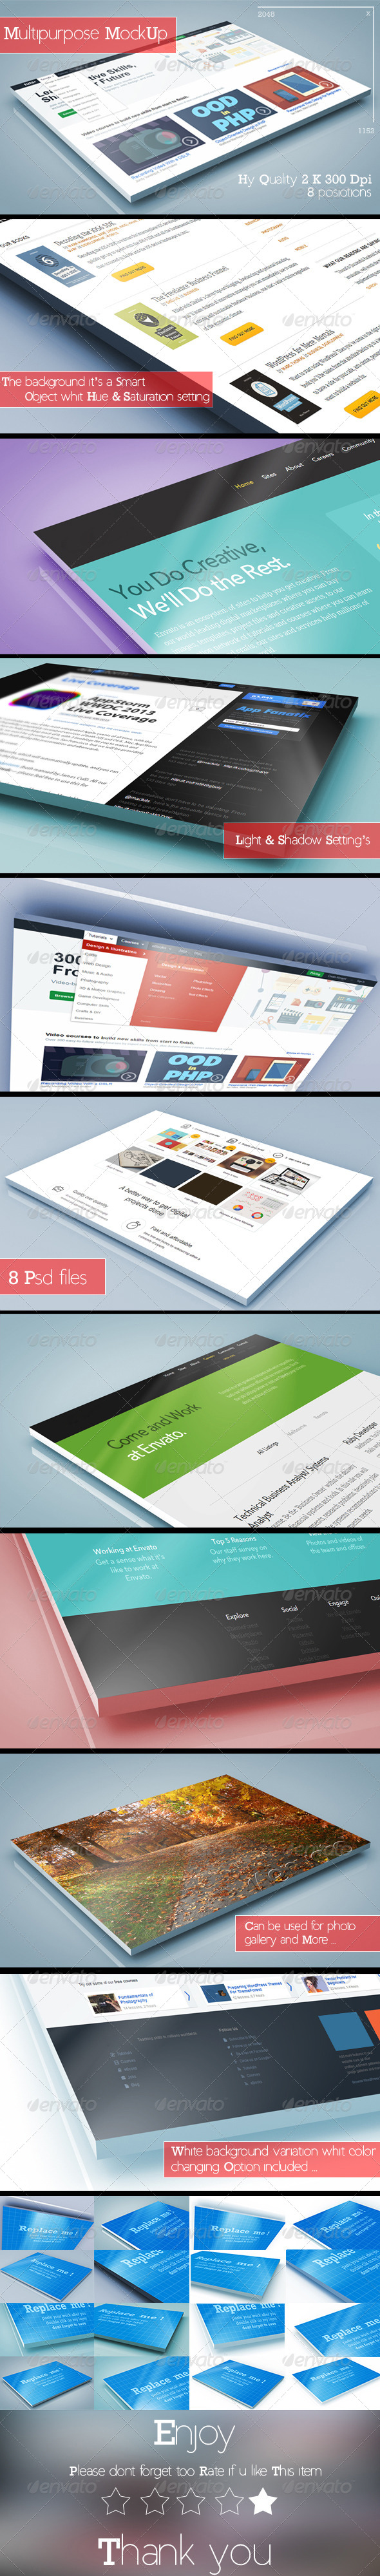 GraphicRiver 3D Multipurpose MockUp 8197098